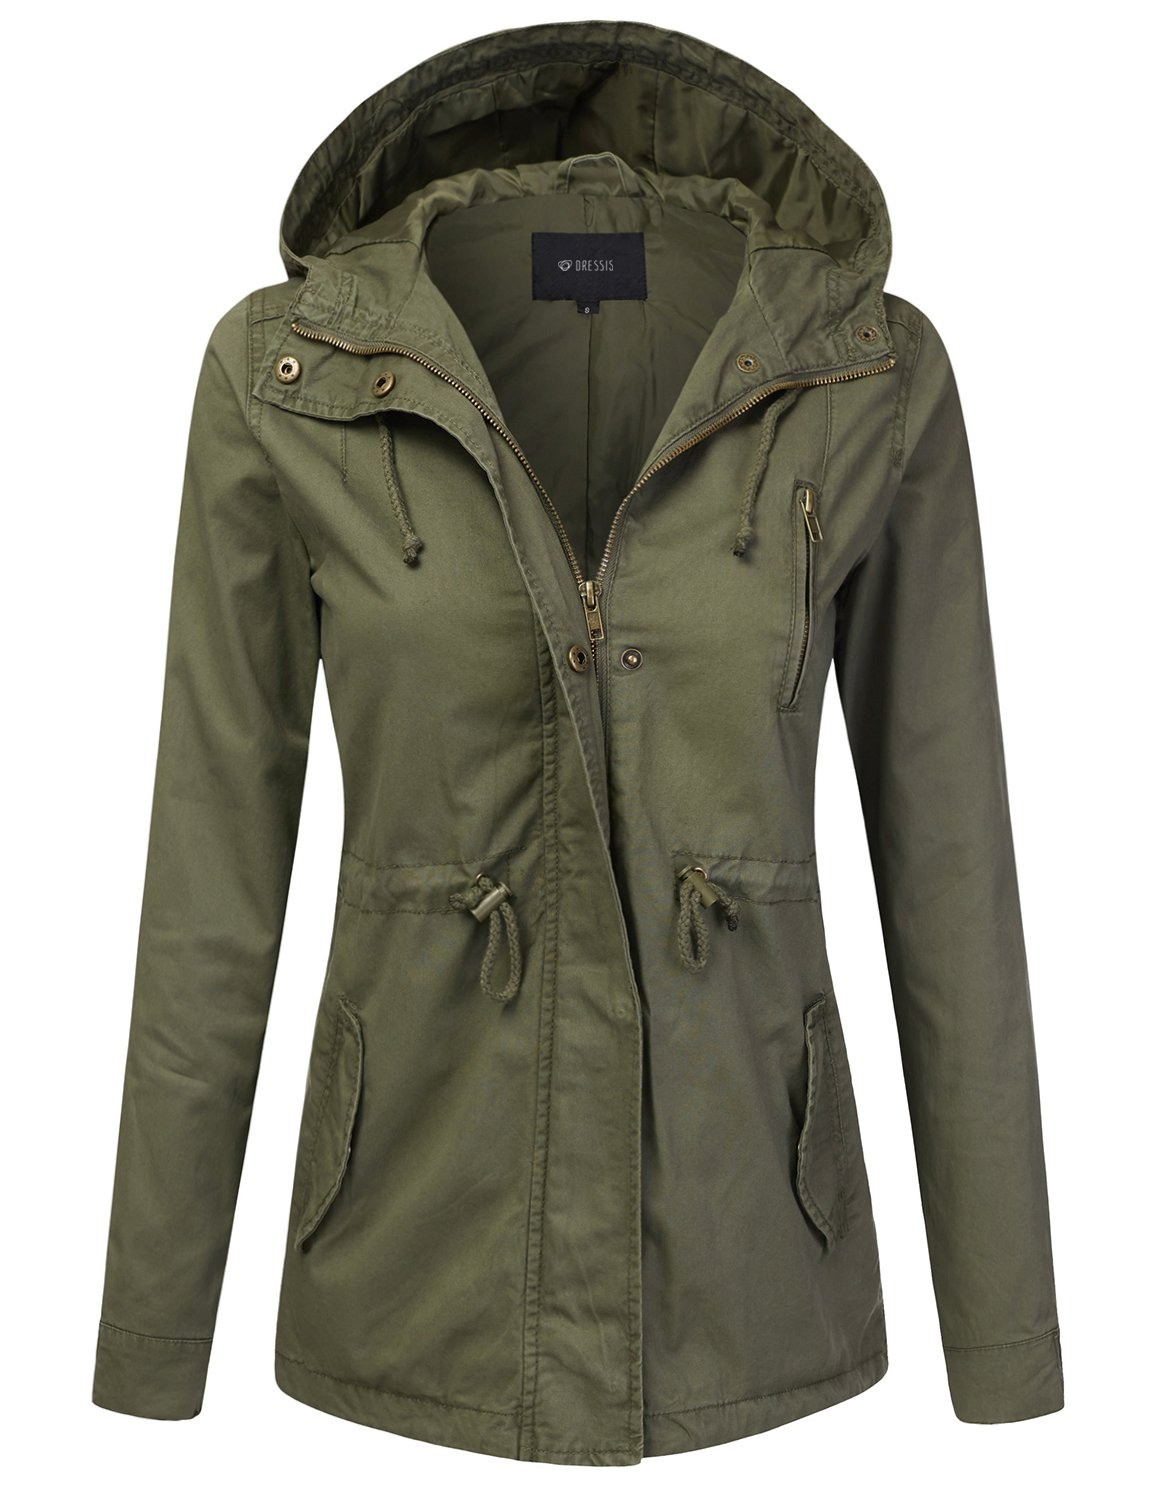 DRESSIS Women's Lightweight Military Anorak Hooded Jacket OLIVE M